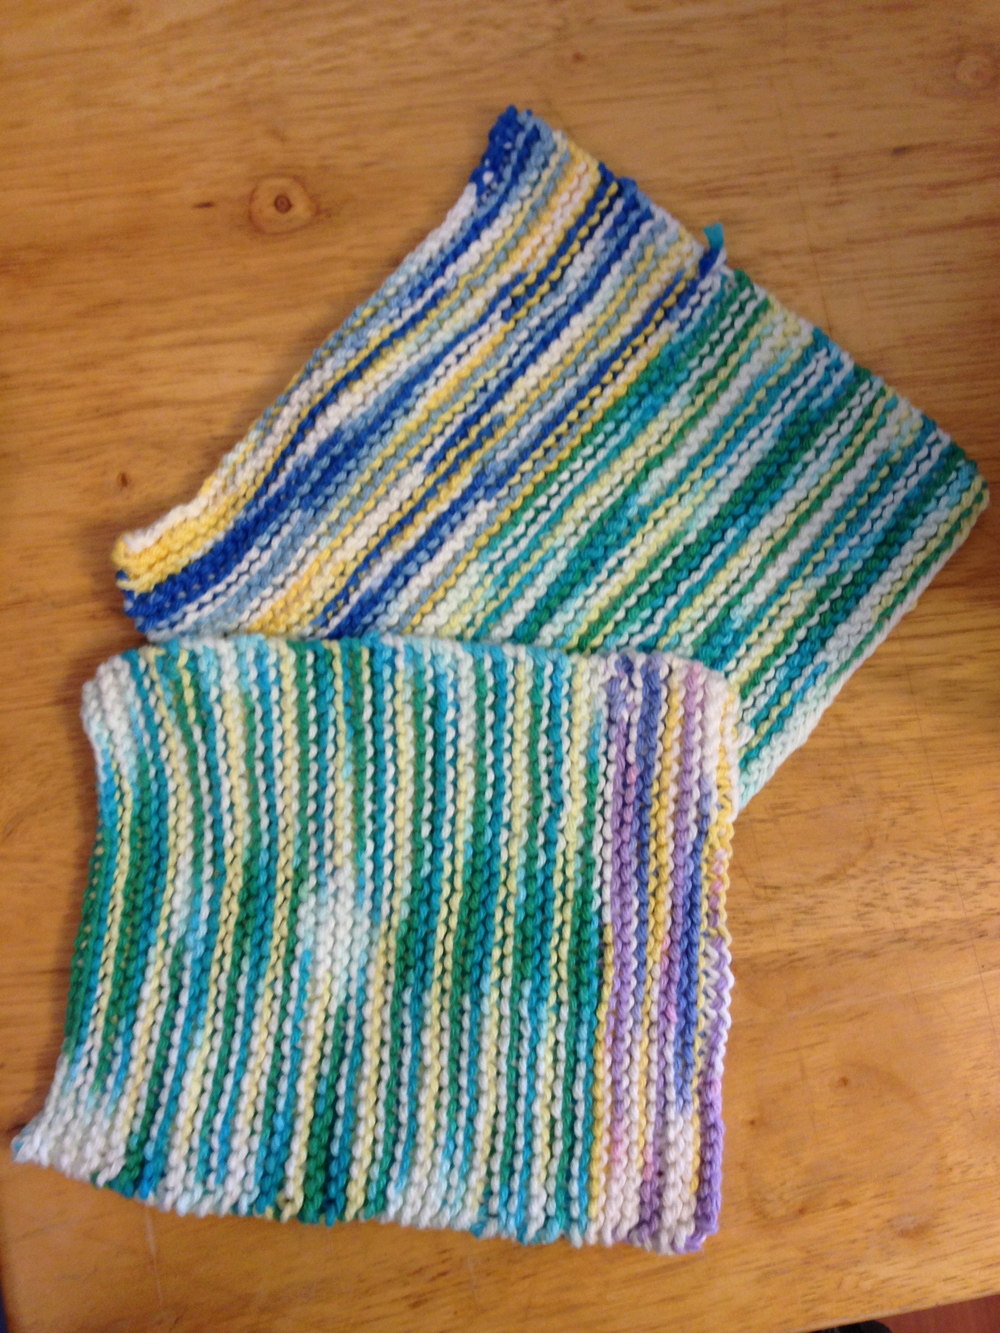 The First Dishcloths